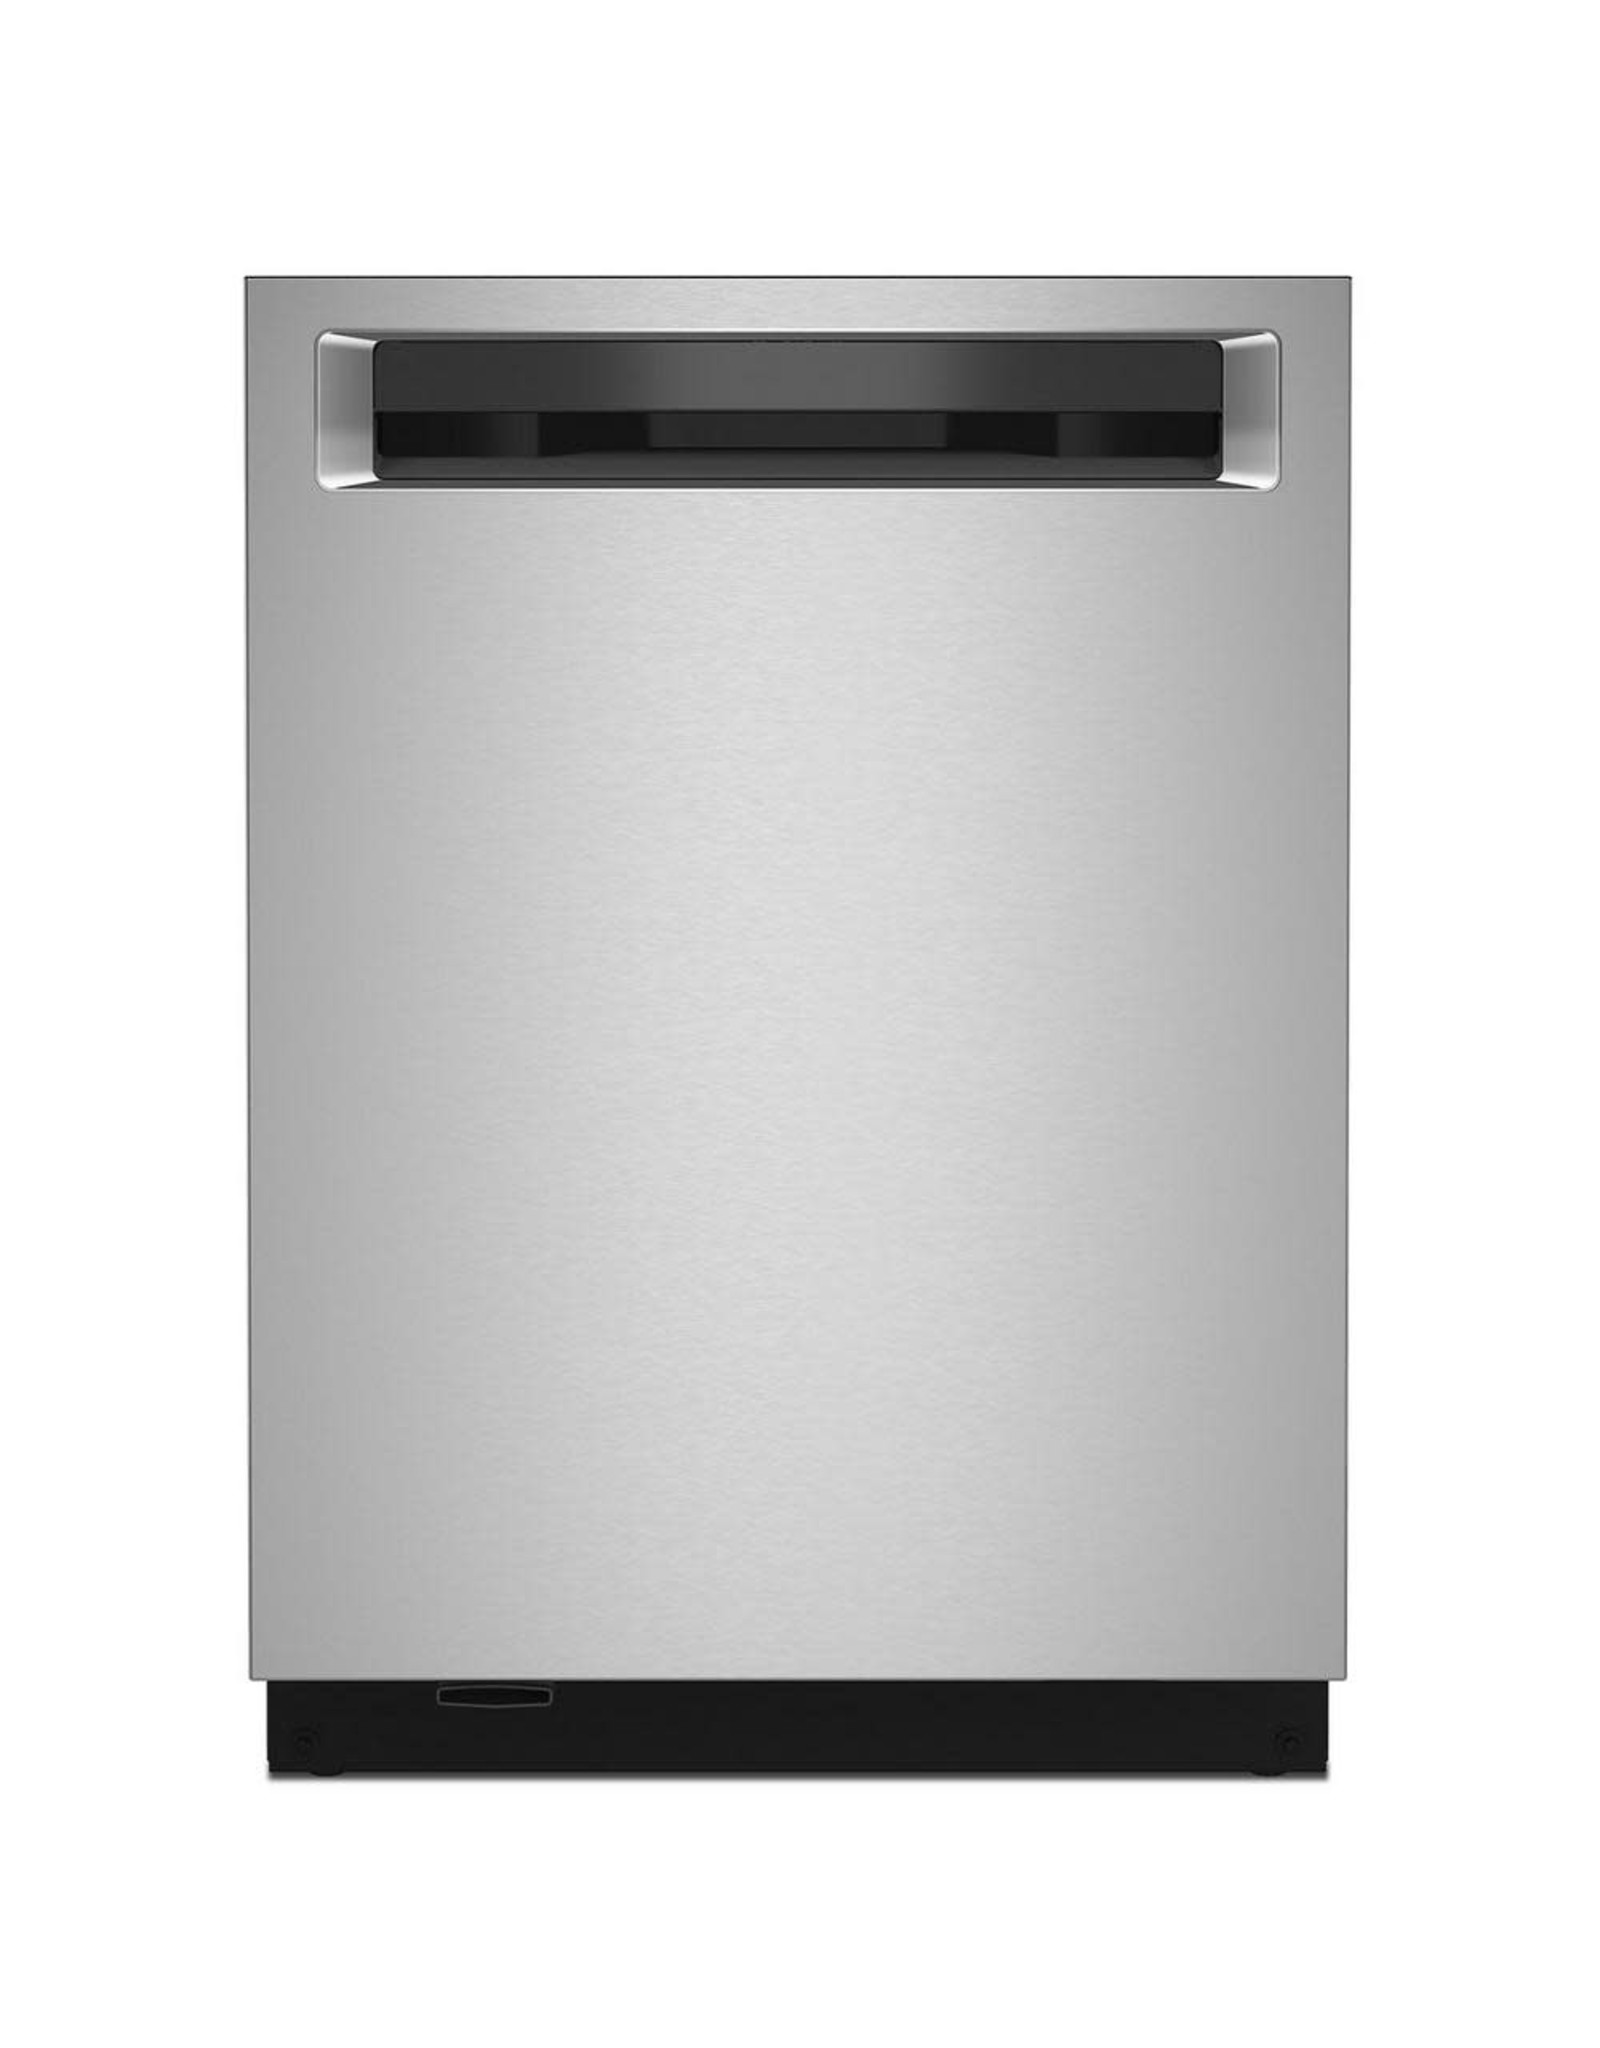 KDPM604KPS 24 in. Top Control Built-In Tall Tub Dishwasher in PrintShield Stainless with Stainless Steel Tub and Third Level Rack